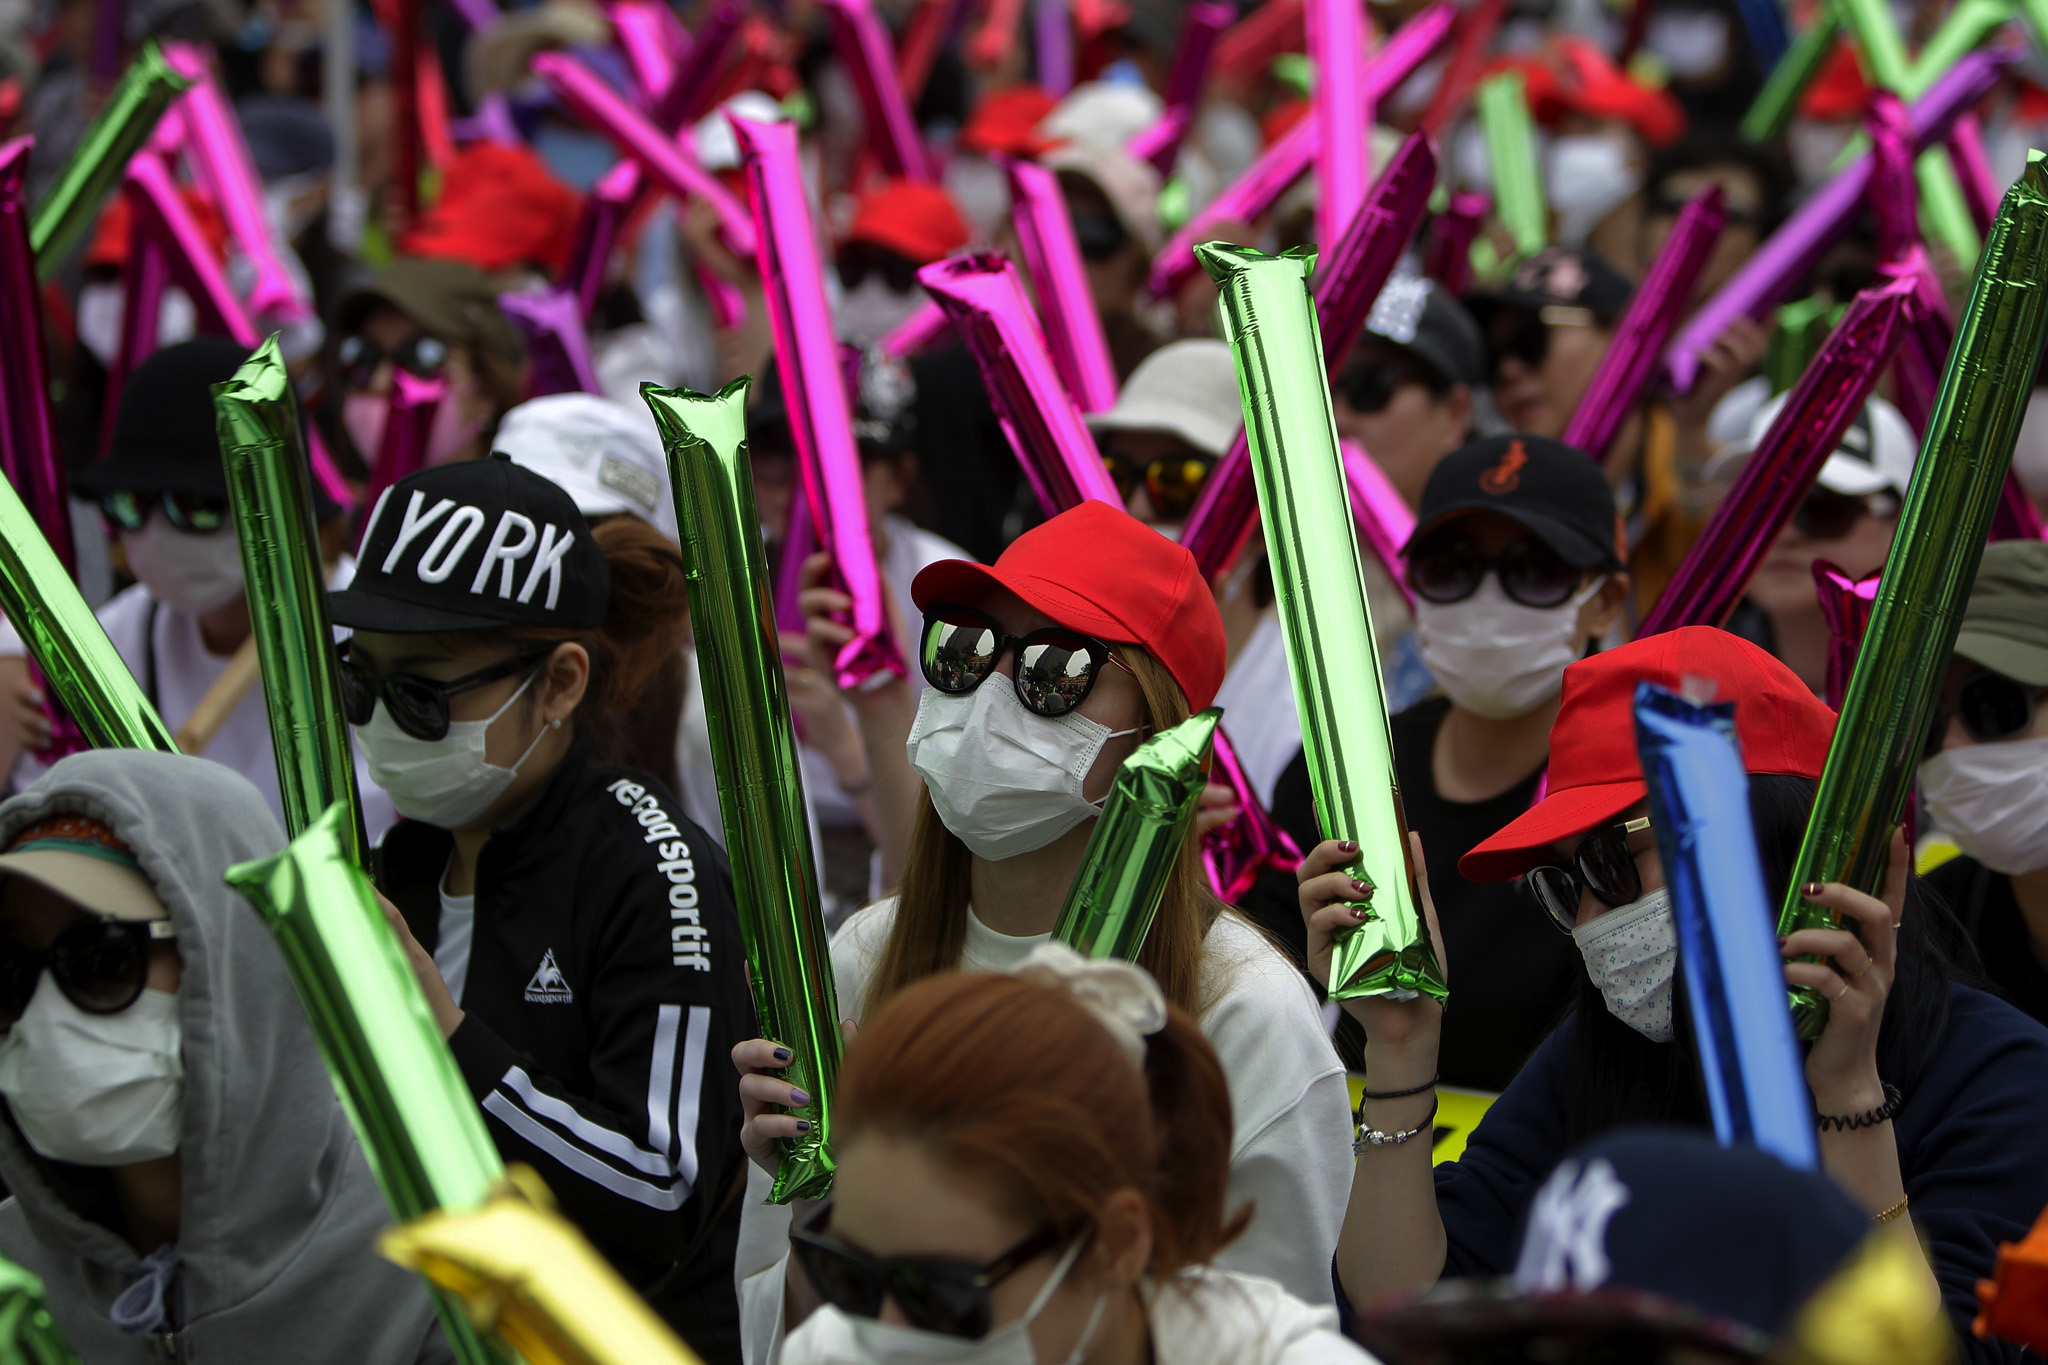 South Korean prostitutes hide their identities as they participate in a rally against anti-sex law in Seoul, South Korea. The government began enforcing new laws eleven years ago to target human traffickers, pimps and prostitutes.  Nearly seven years after tough laws began driving thousands of South Korean prostitutes out of business, sex workers of the red-light districts are fighting back, spurred by what they say is an unprecedented campaign of police harassment.